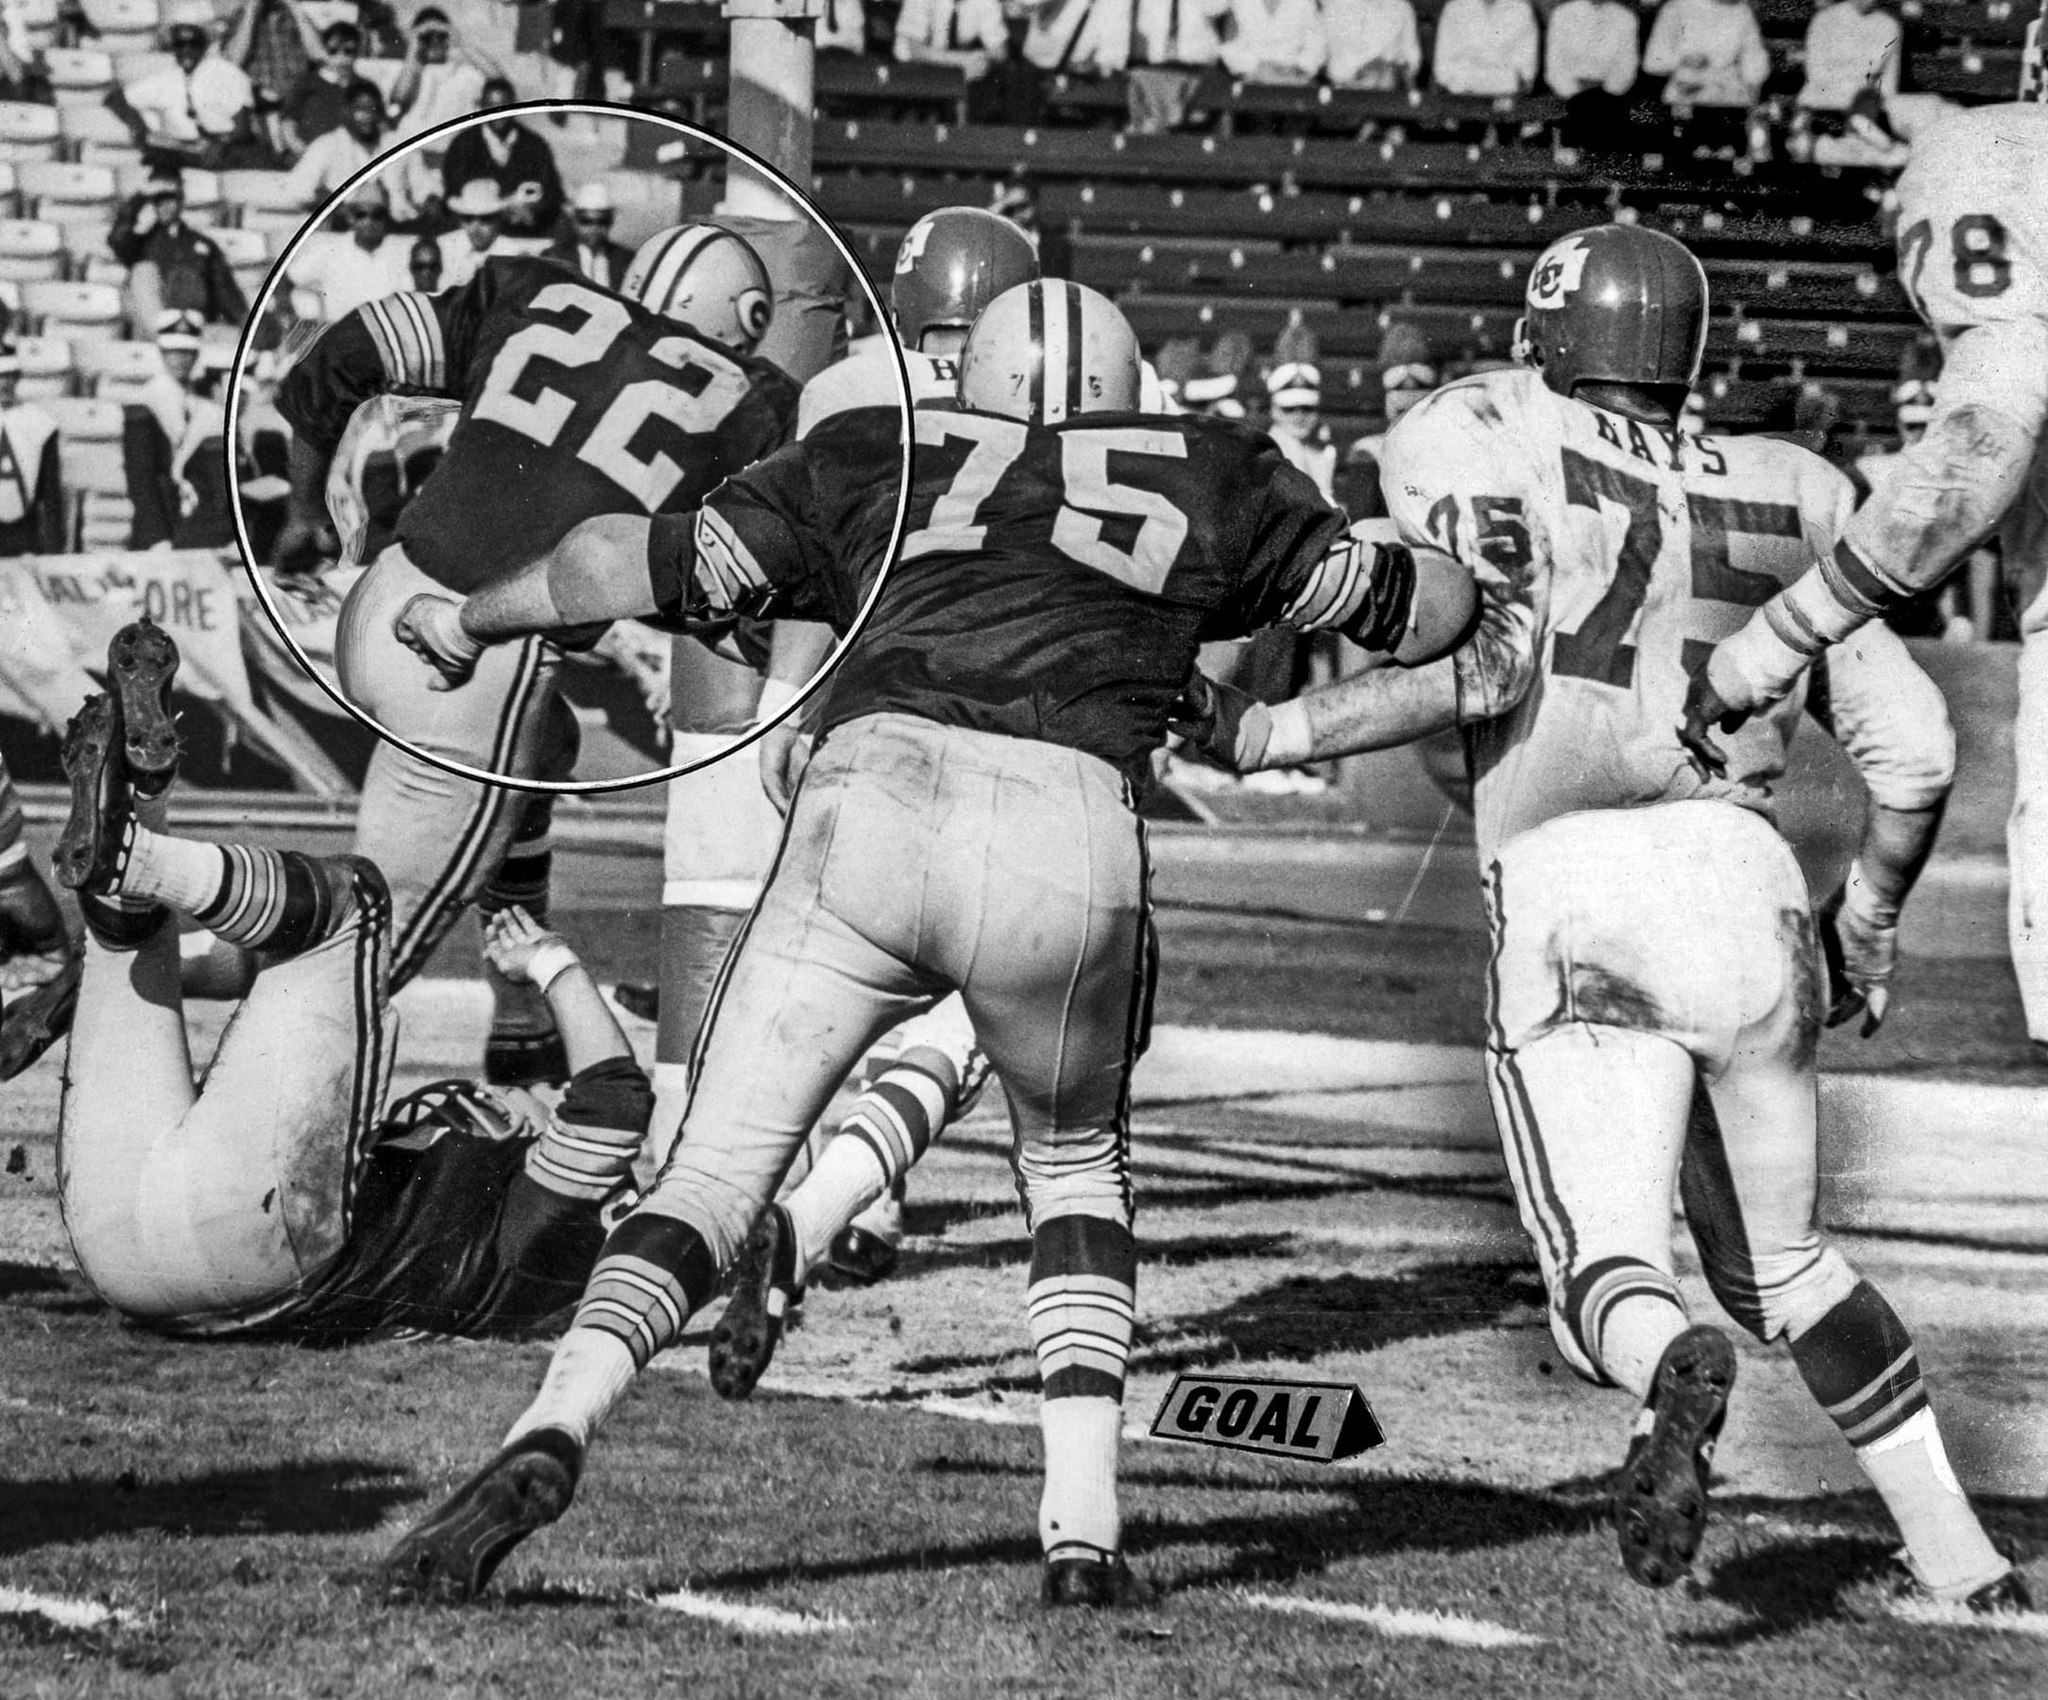 Jan. 15, 1967: Packers' Elijah Pitts, 22, scores on five yard run early in the third quarter. Packer